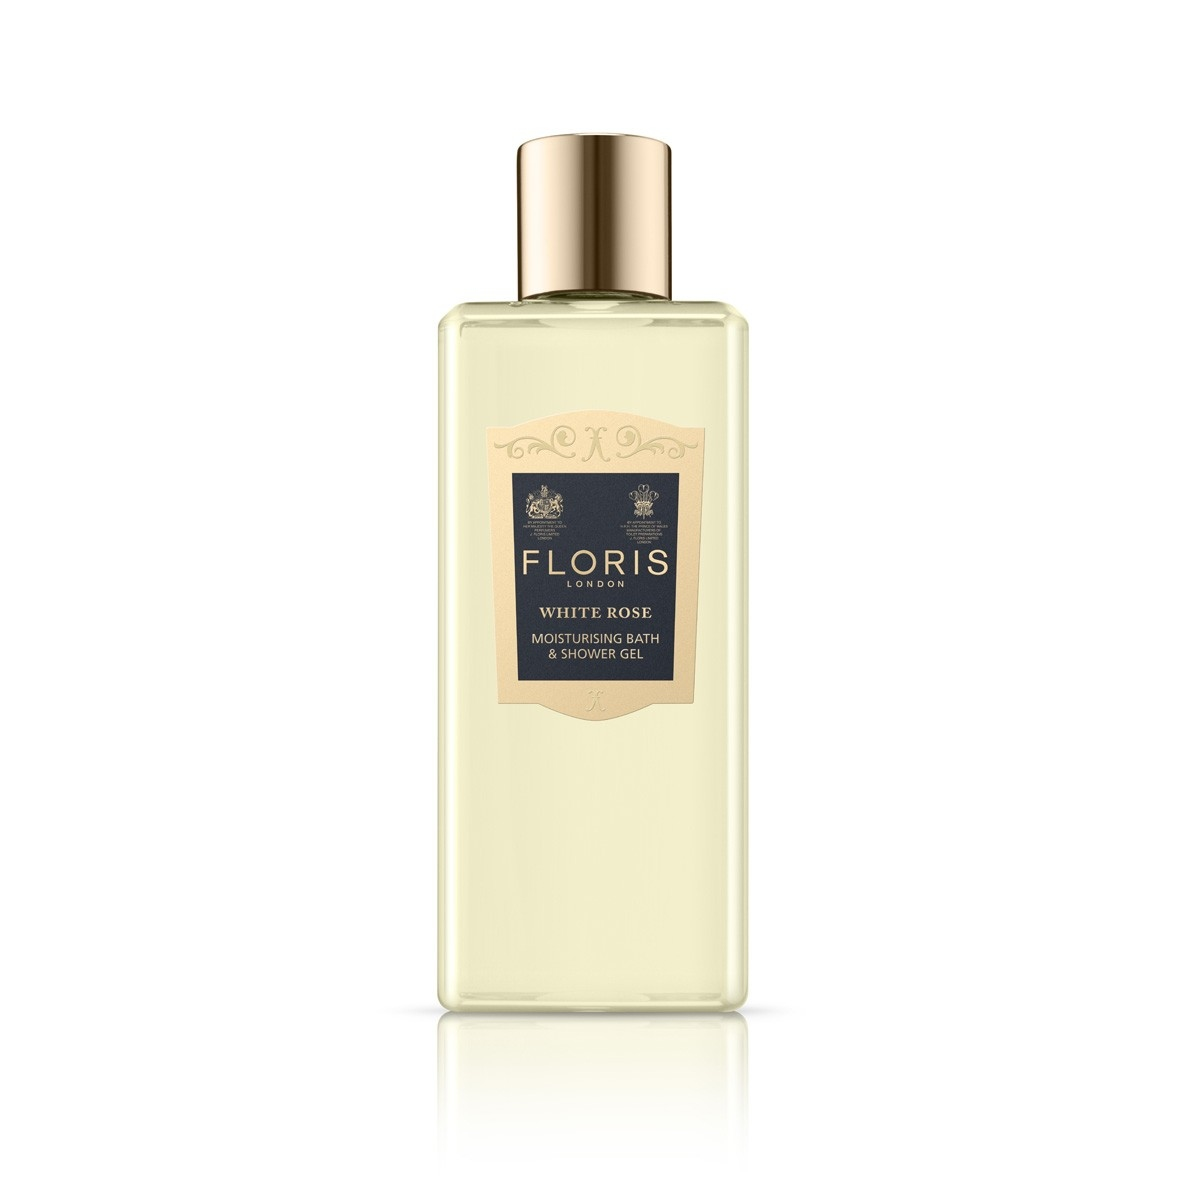 Floris: White Rose Moisturising Bath & Shower Gel 250ml